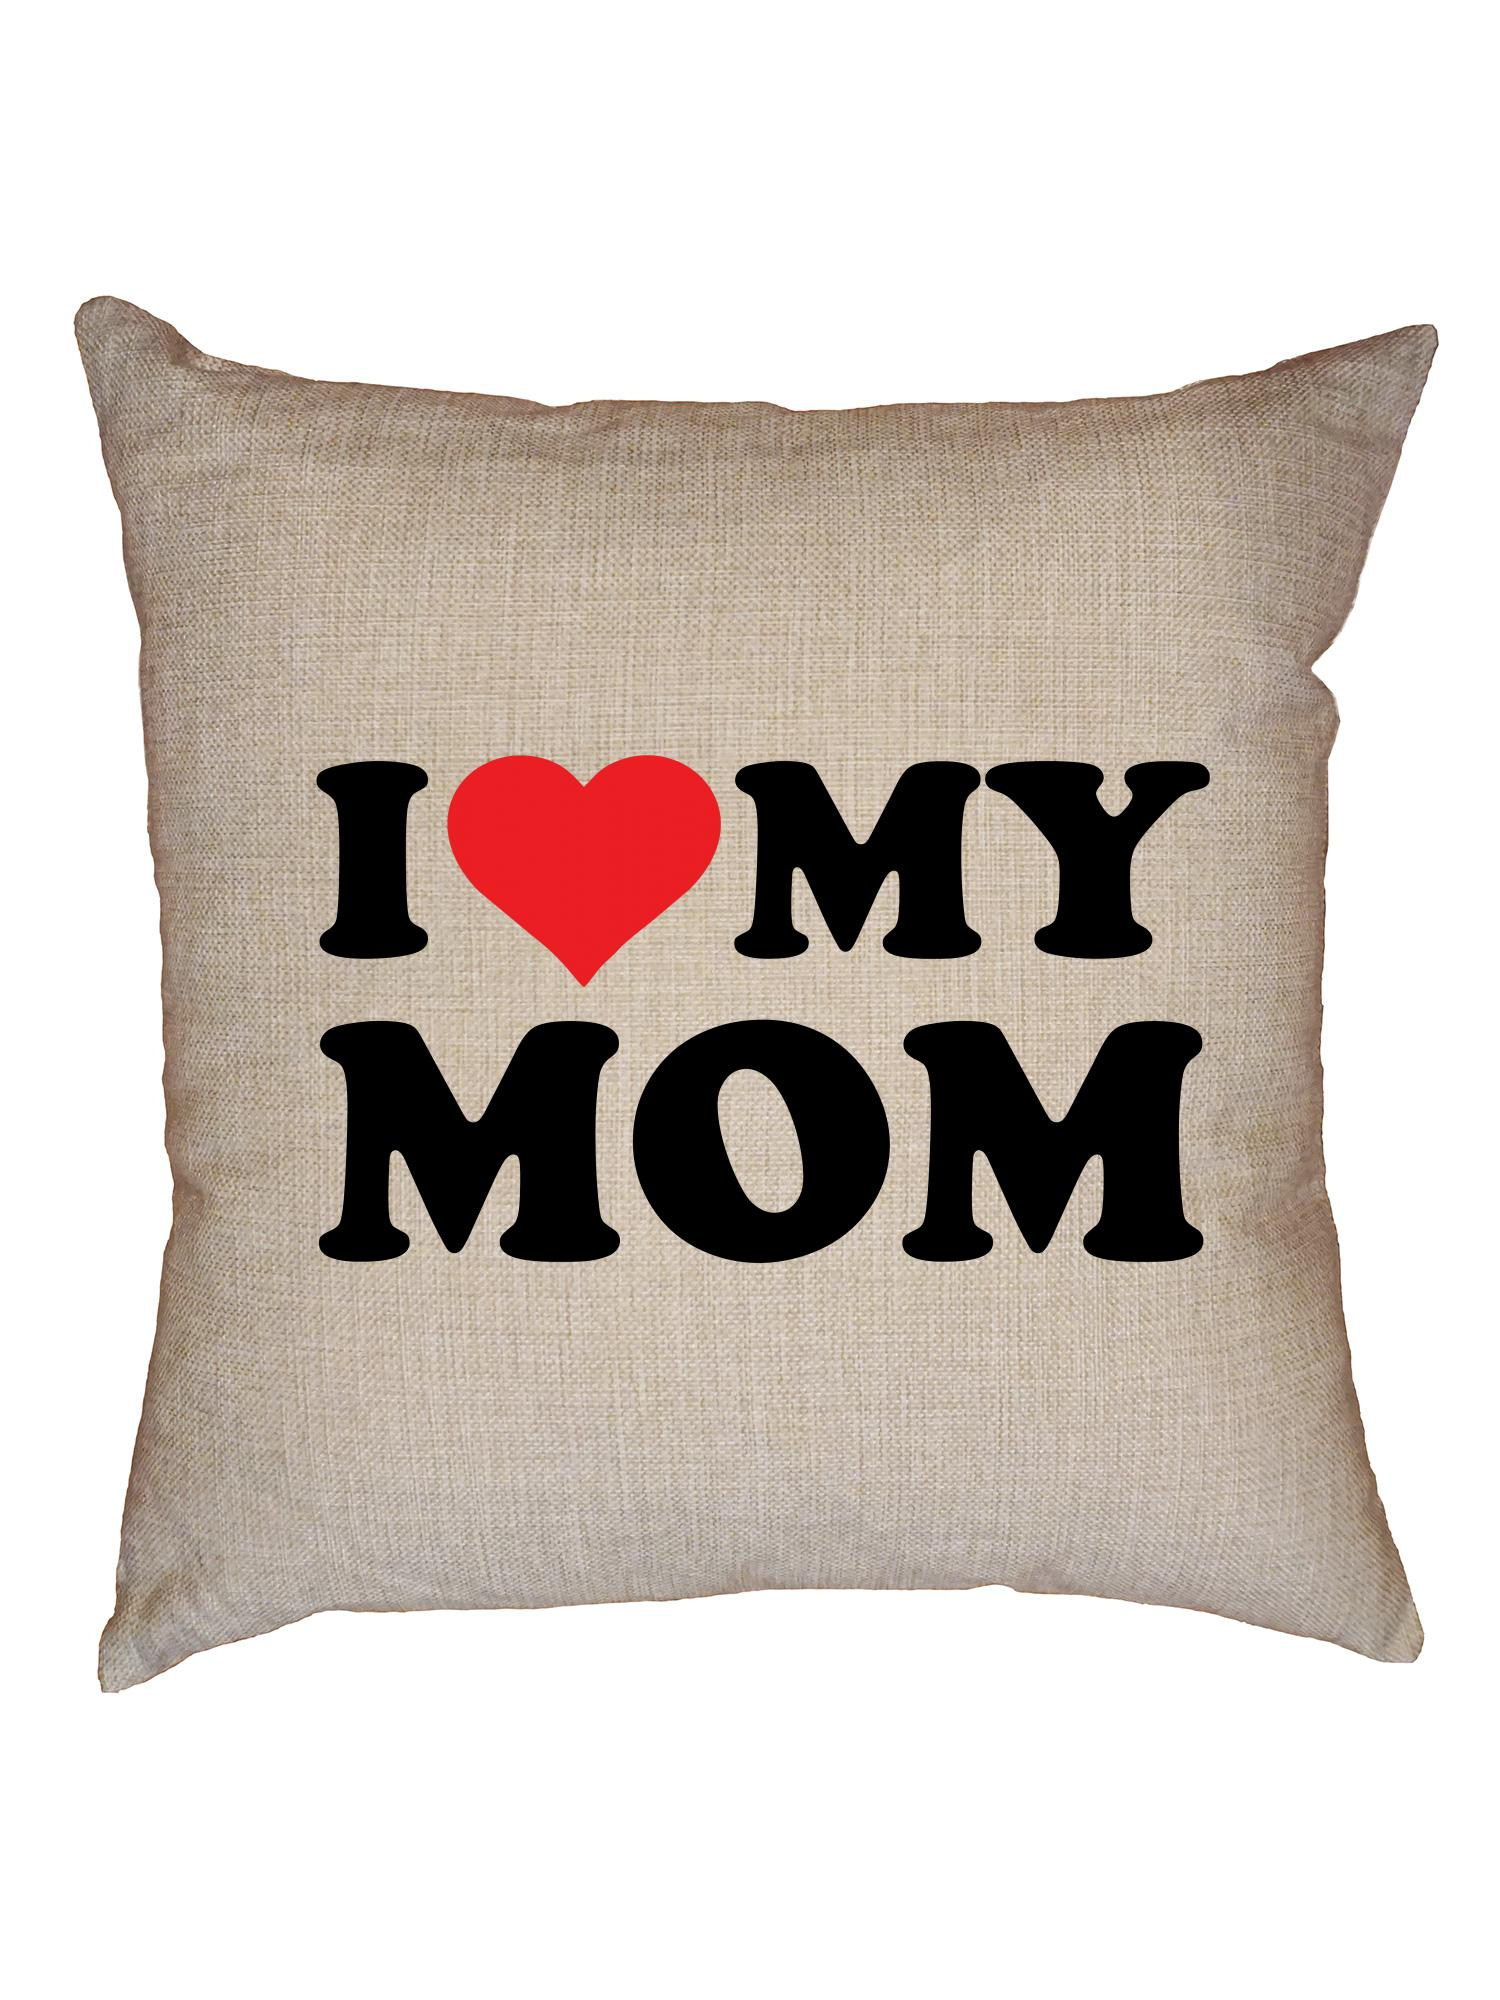 i love my mom big red heart perfect mother gift decorative linen throw cushion pillow case with insert